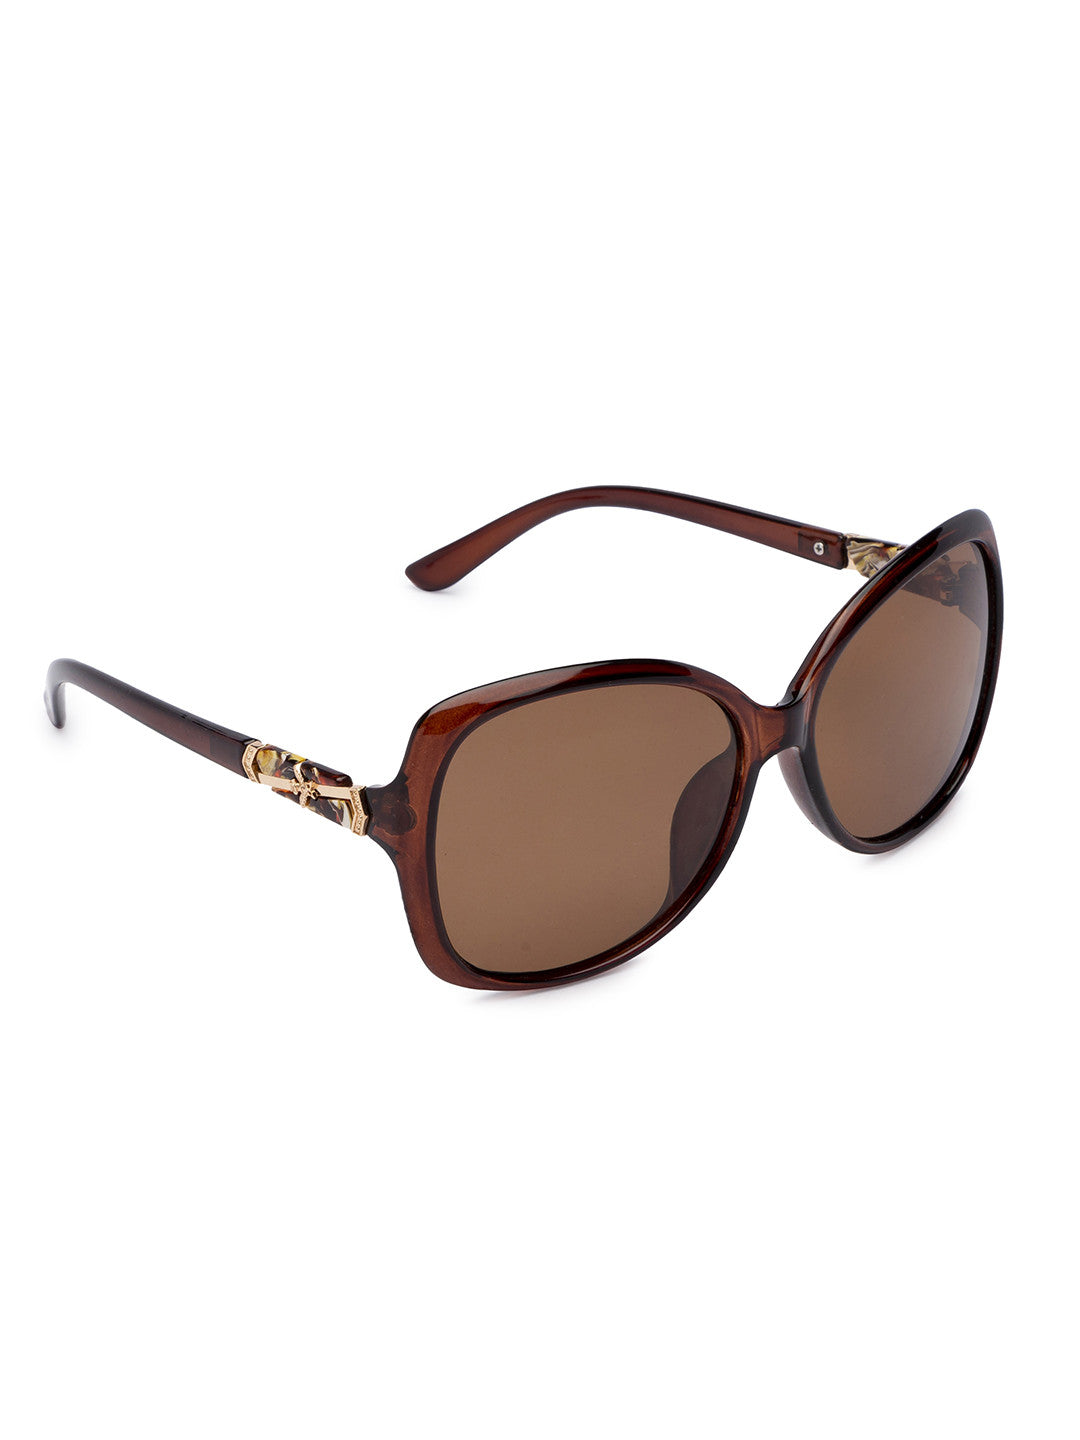 Brown Full Rim Wayfarer Sunglasses-2